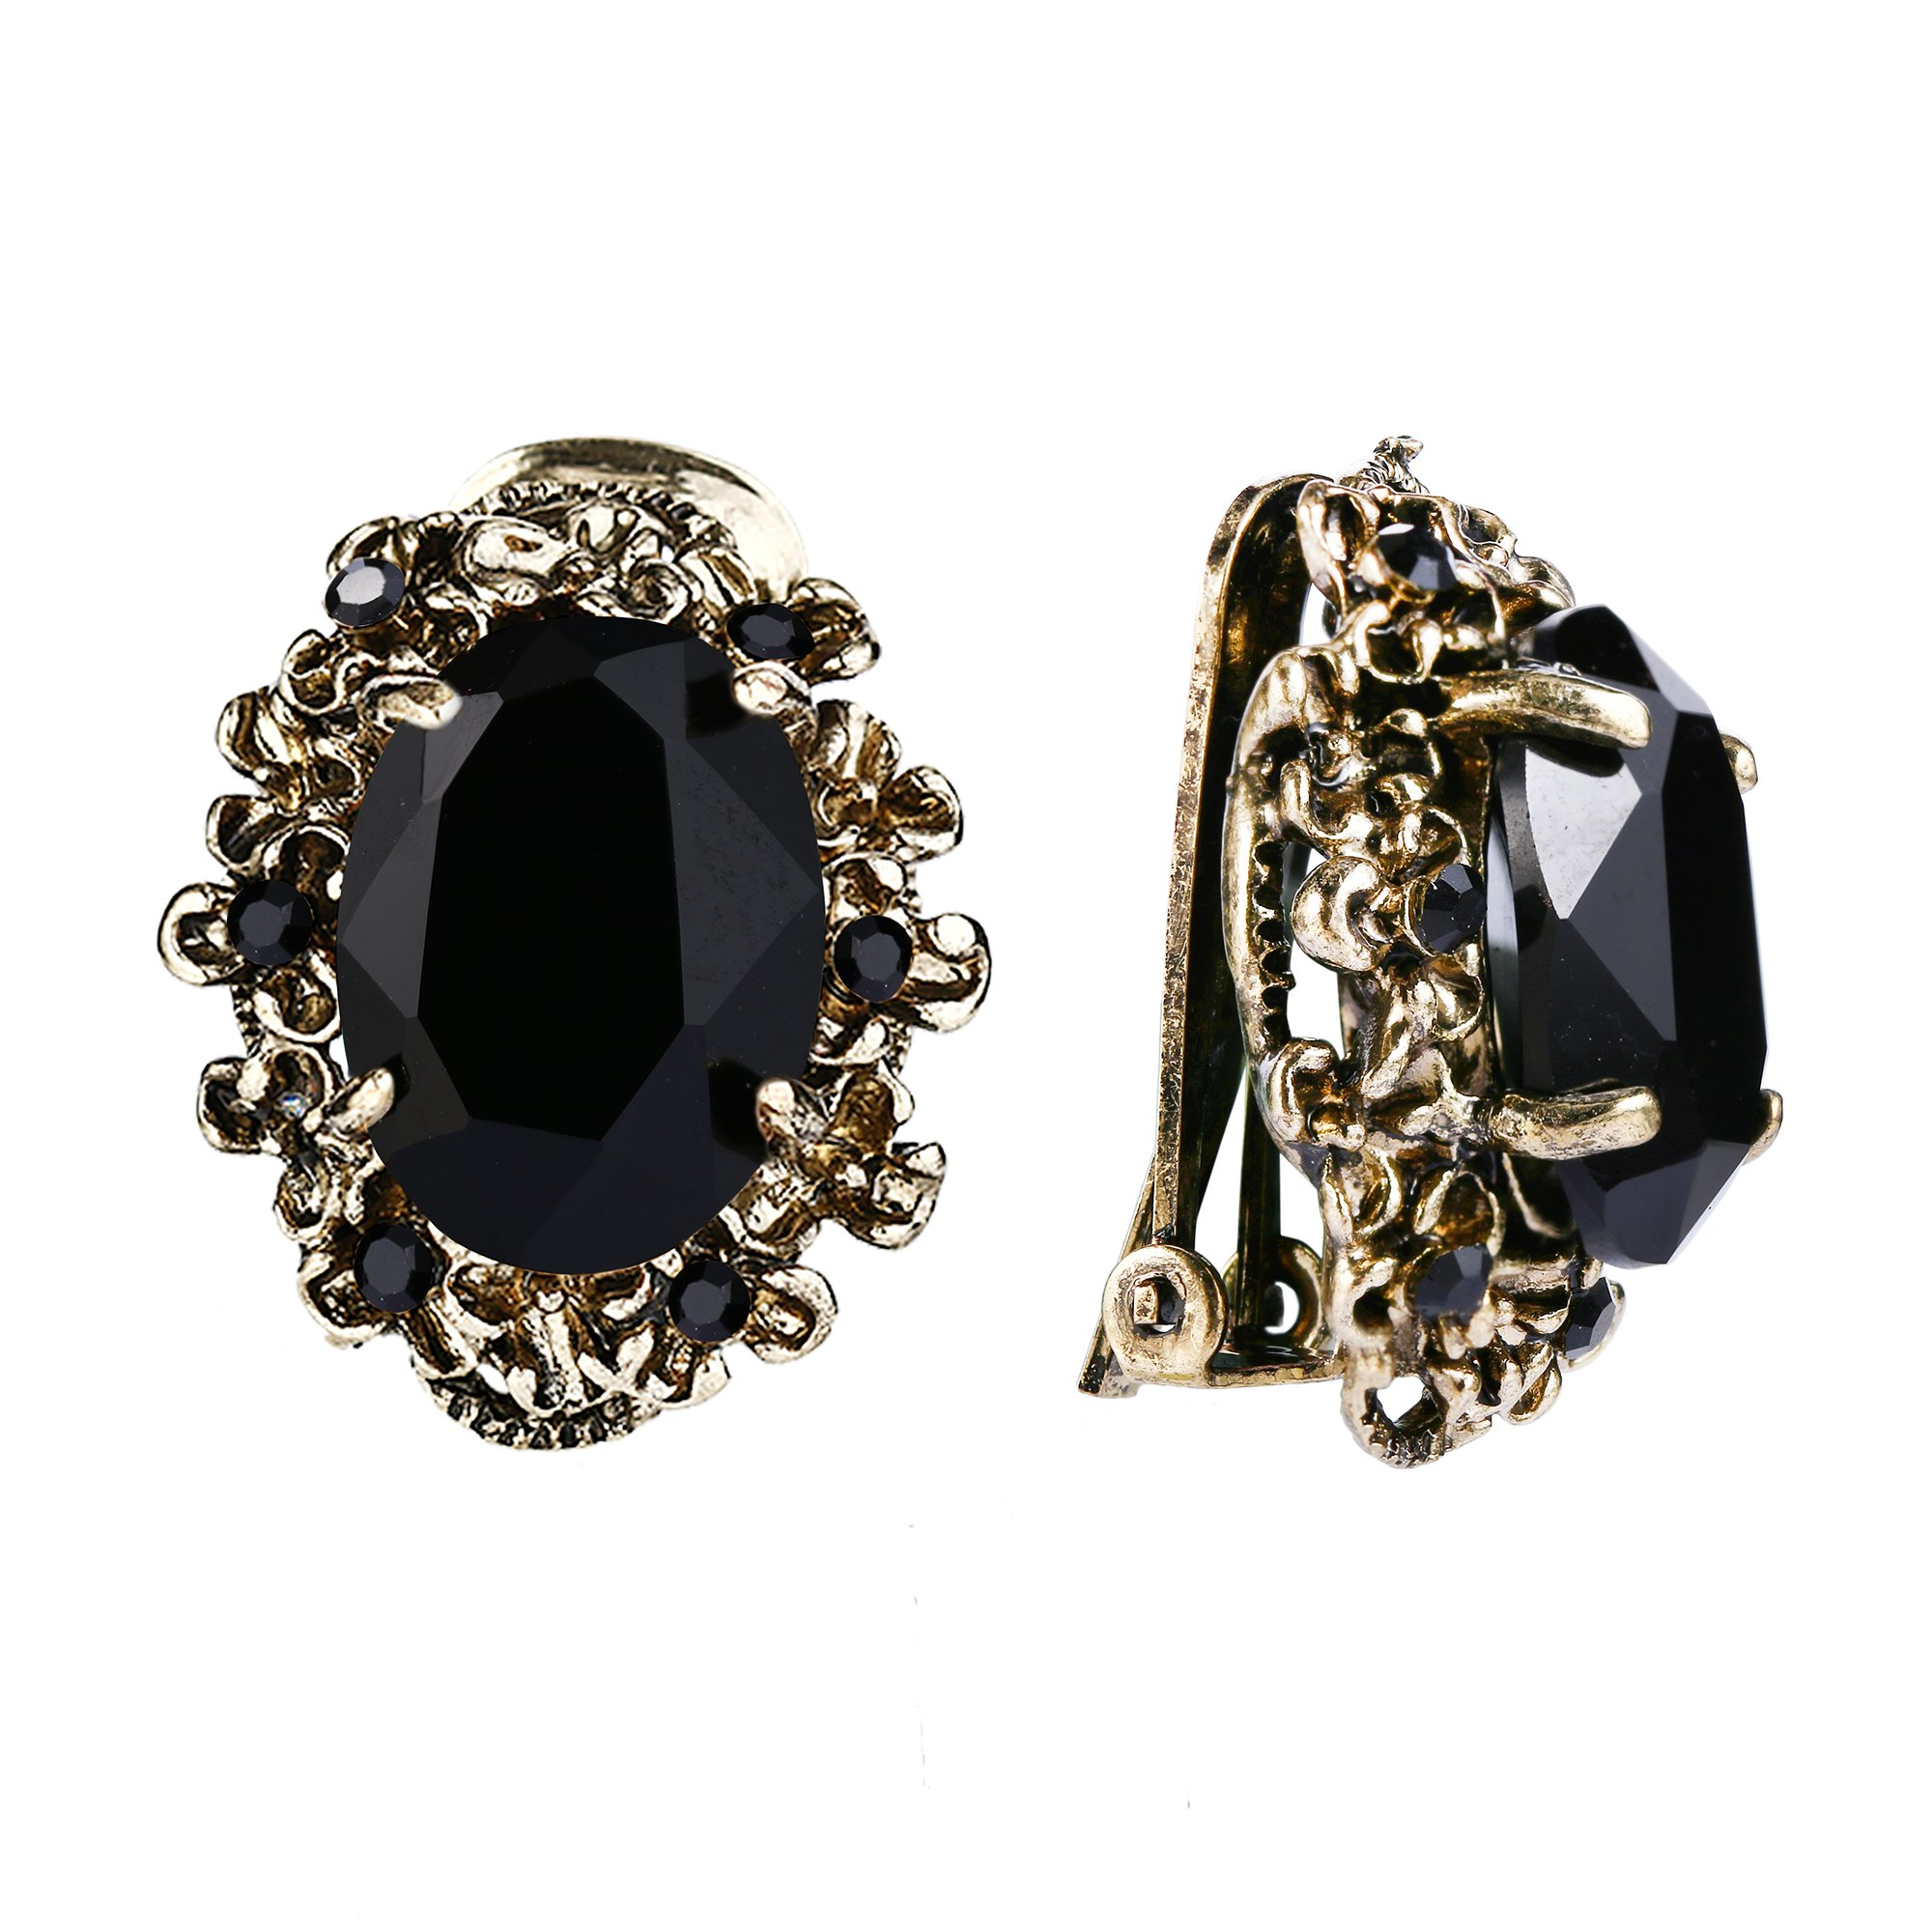 BriLove Antique-Gold-Toned Clip-On Earrings Women's Victorian Style Crystal Floral Cameo Inspired Oval Earrings Black